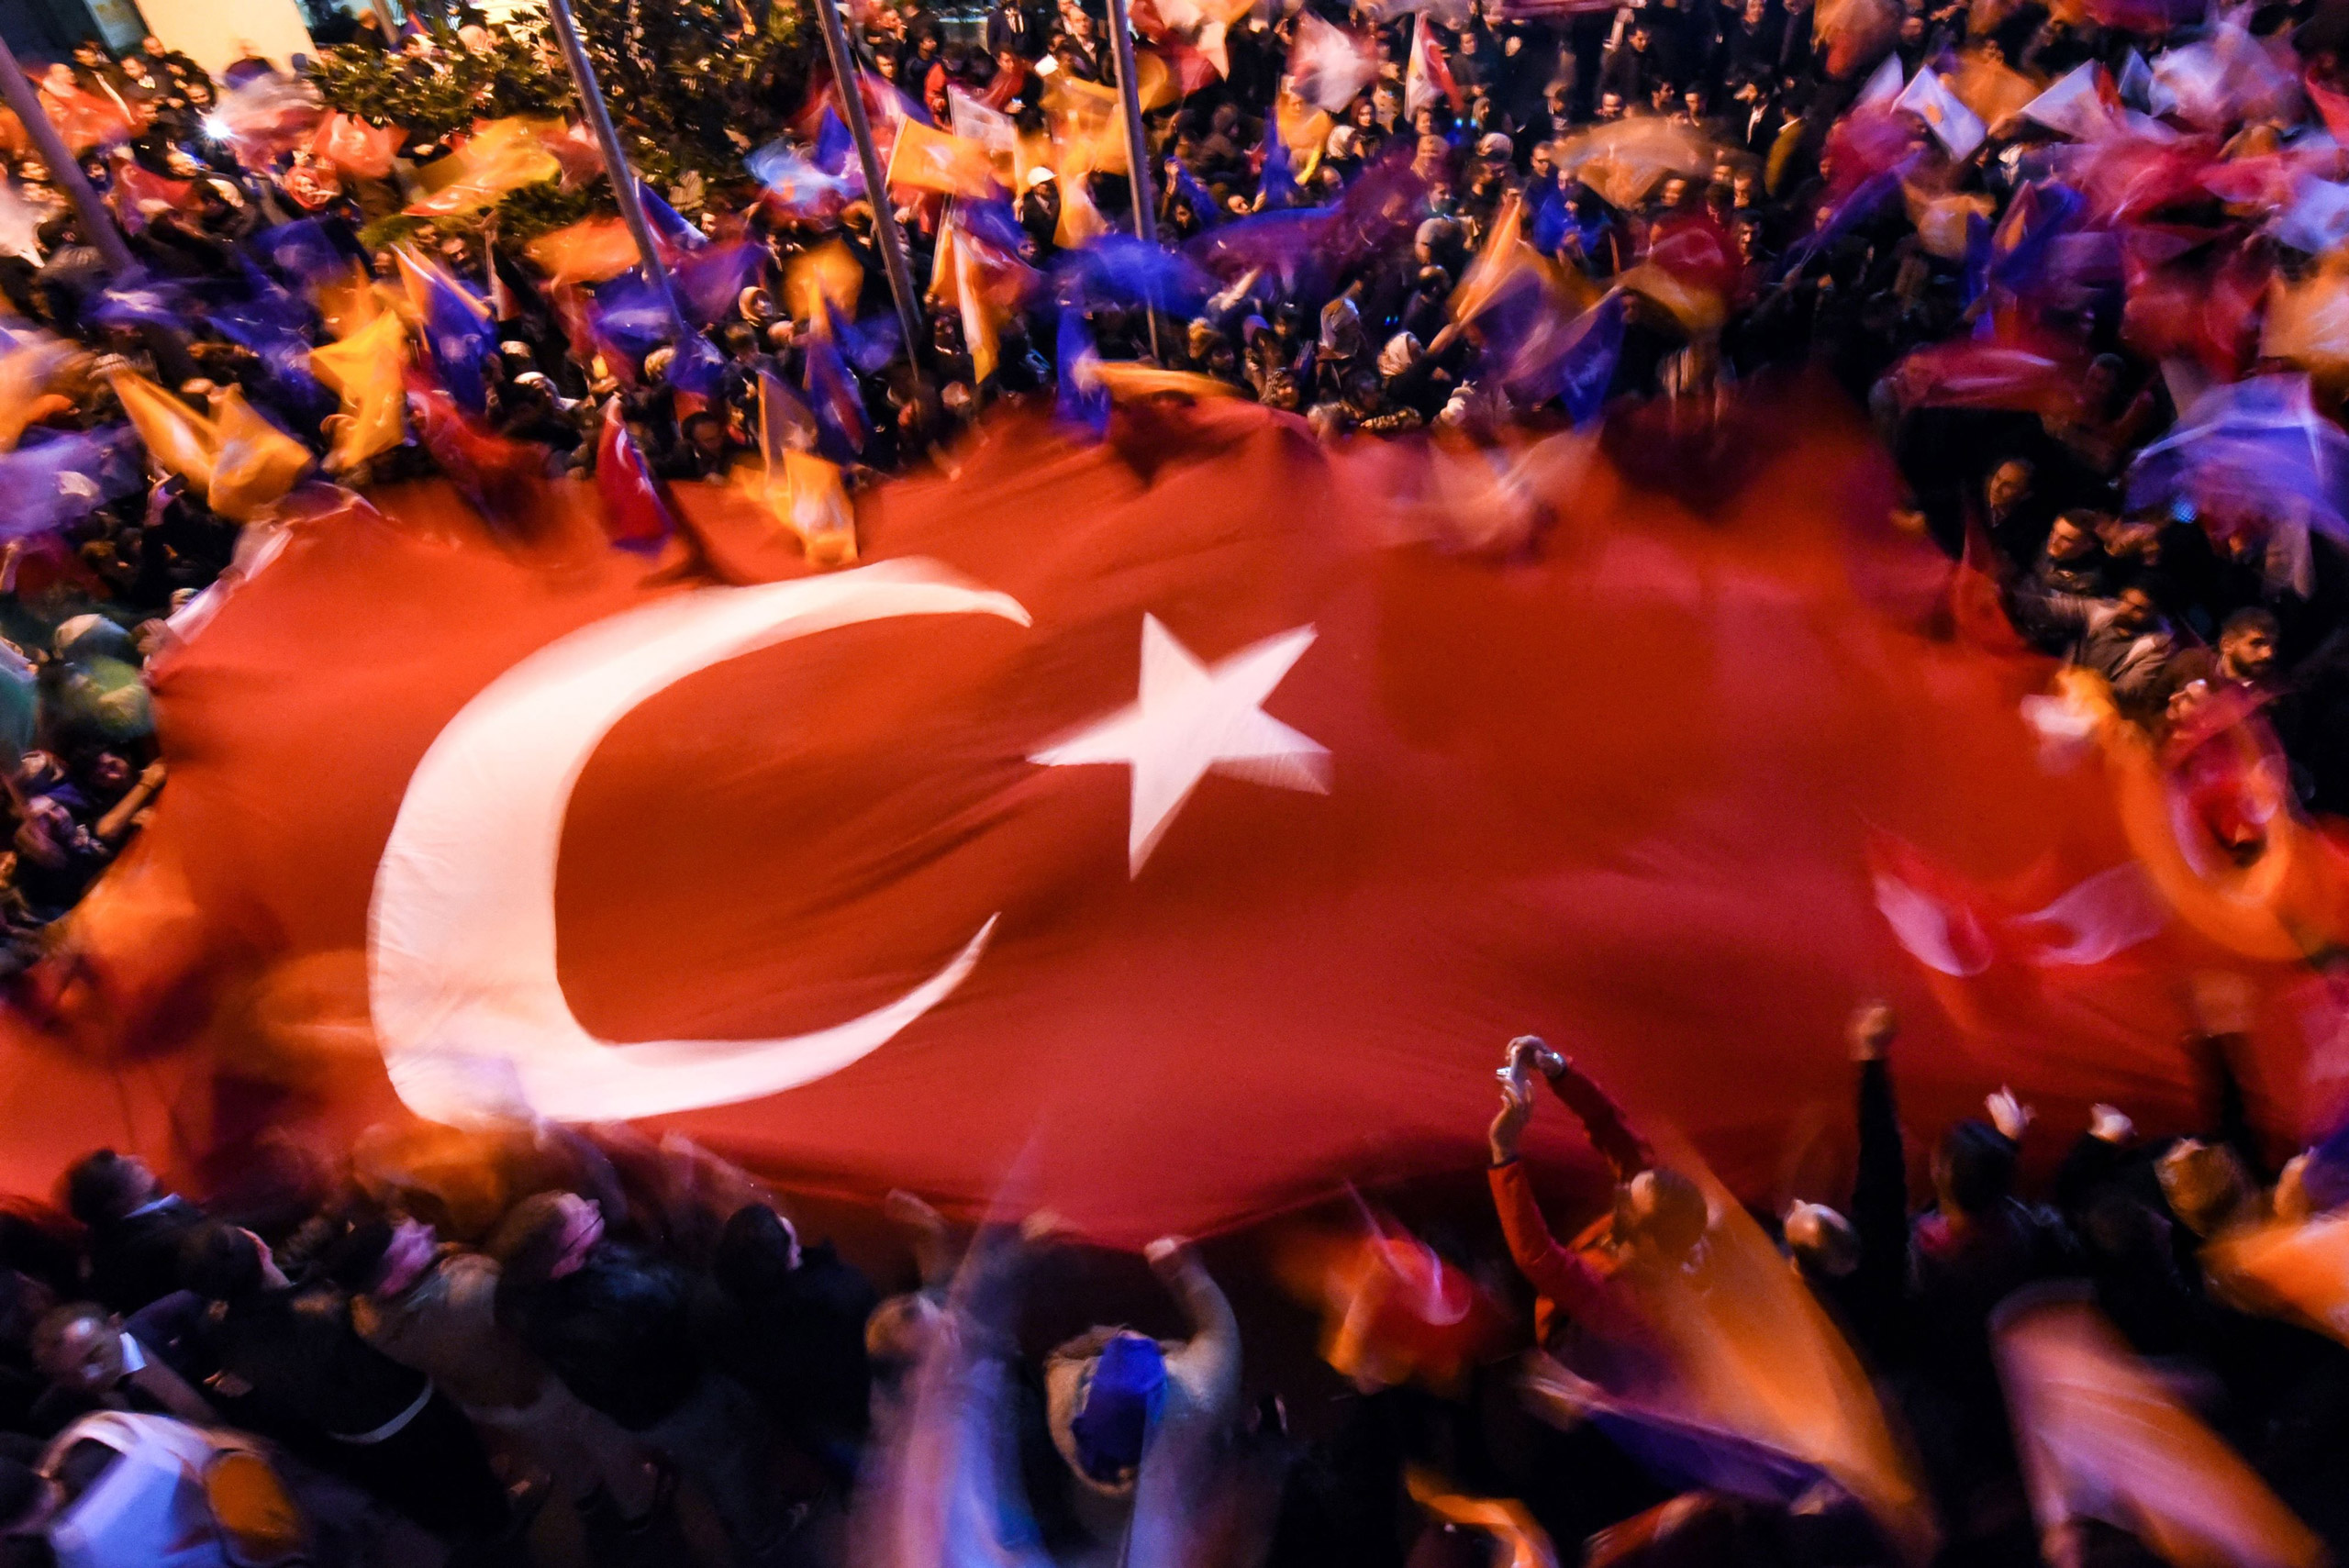 Supporters of Turkey's Justice and Development Party (AKP) wave a giant Turkish flag as they celebrate after the first results in the country's general election in Istanbul on Nov. 1, 2015.